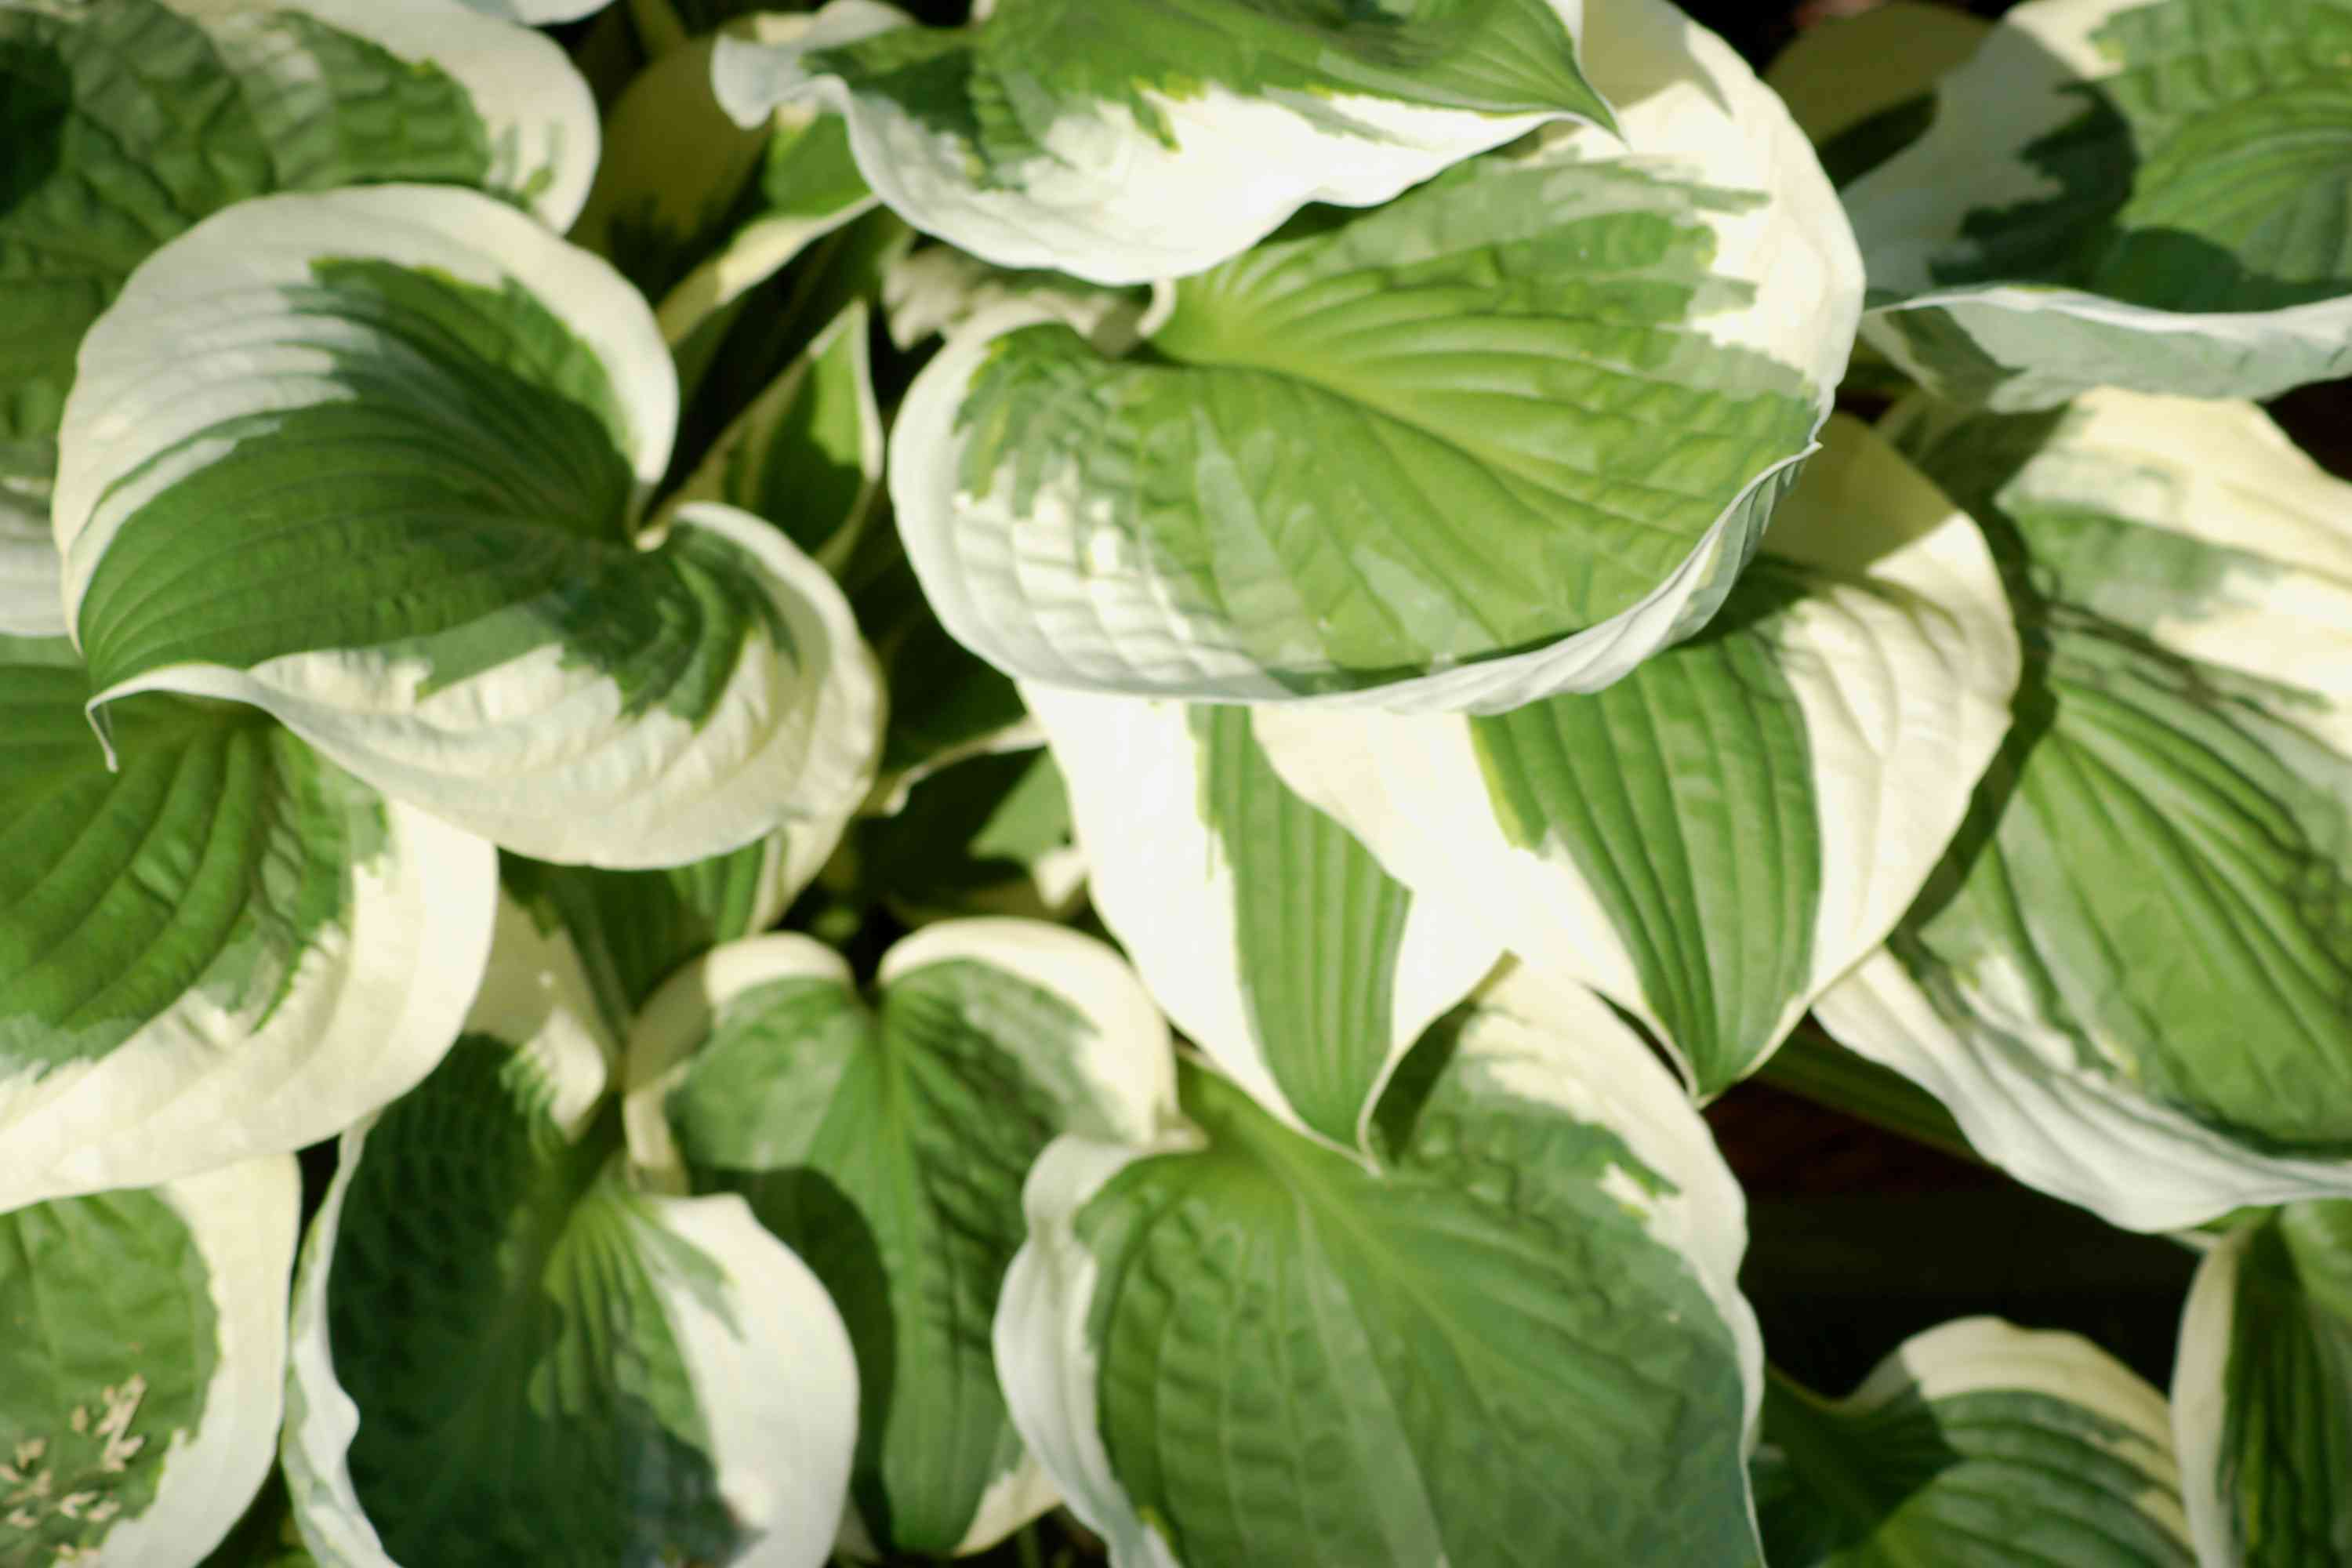 'Patriot' hosta with green leaves edged in white